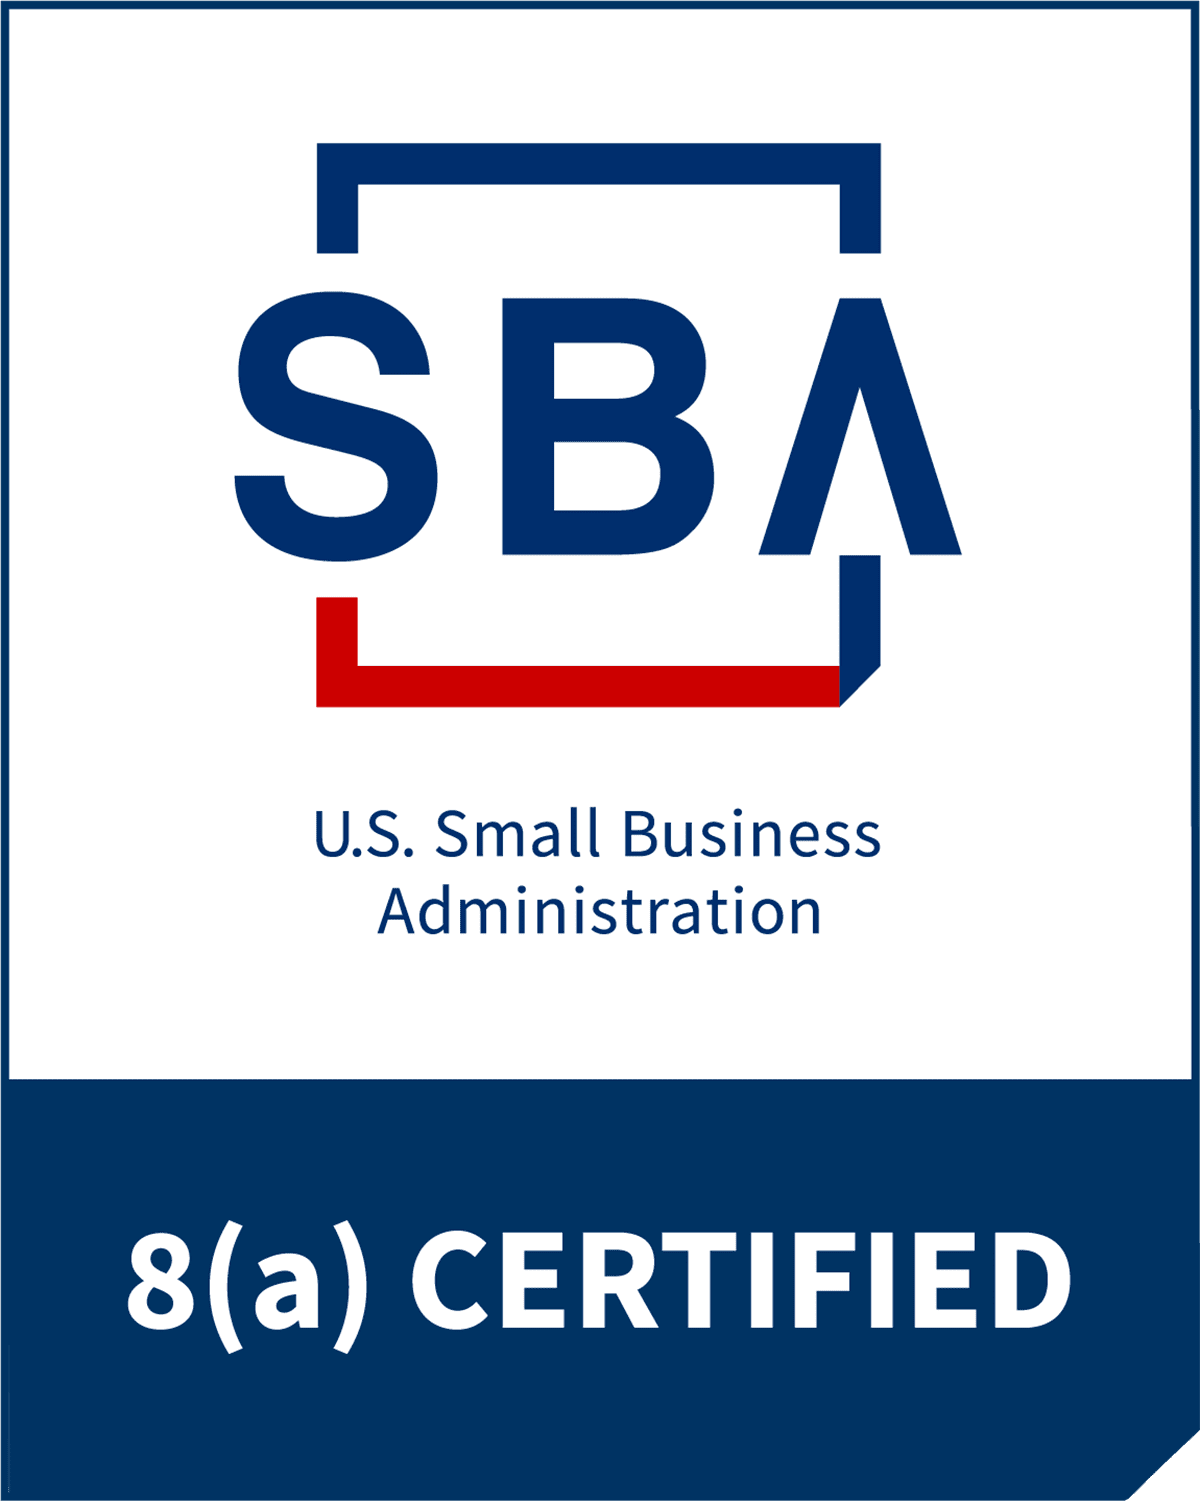 8a Certified